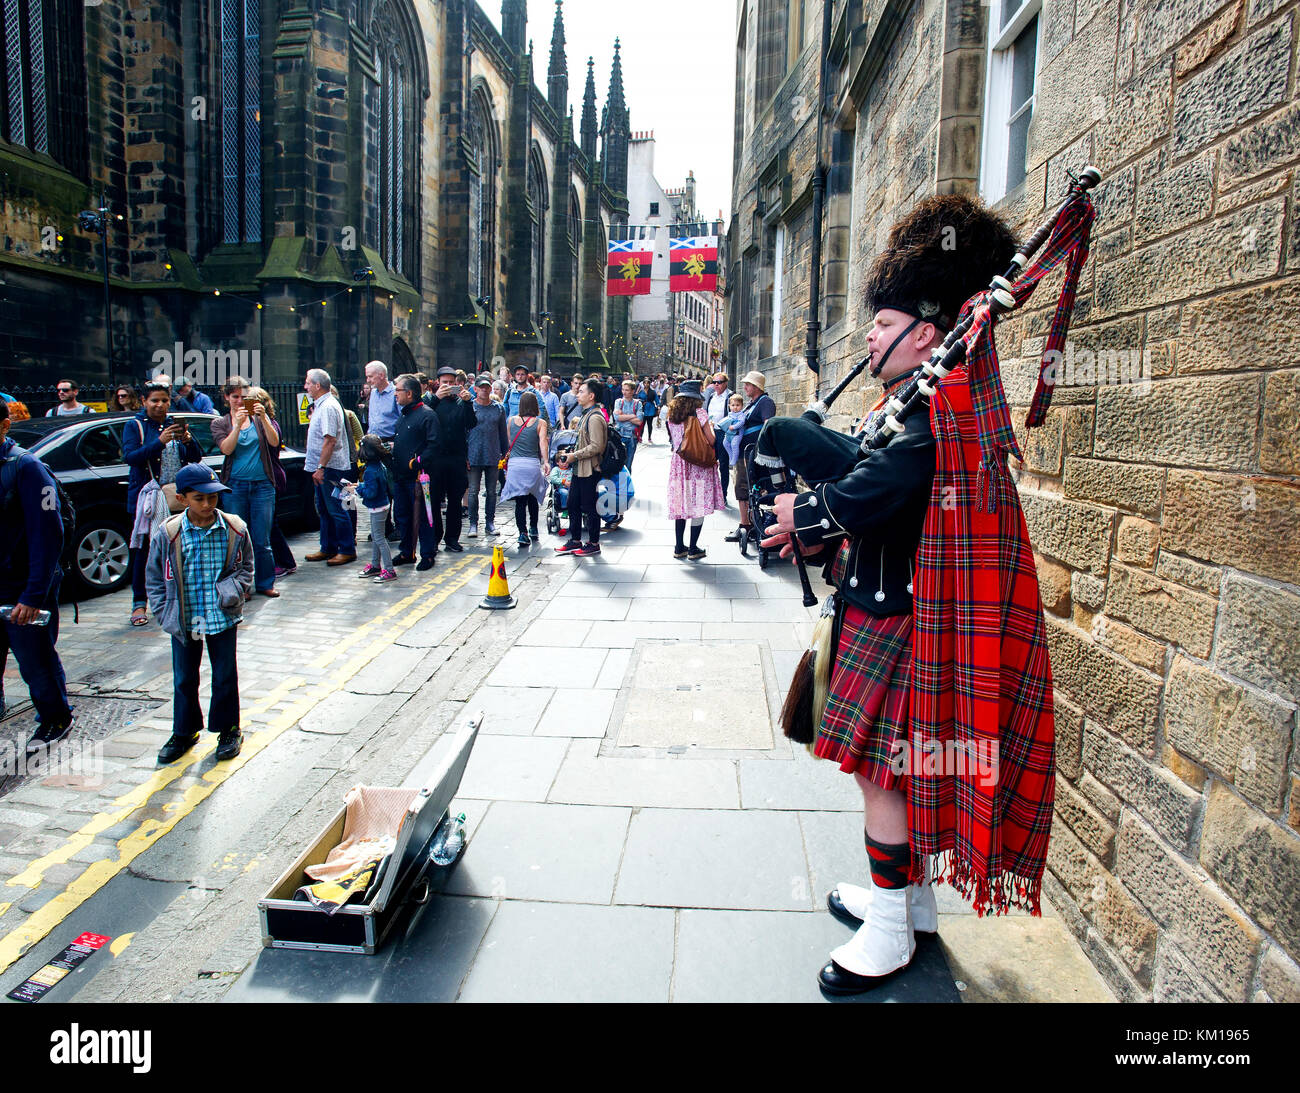 A Scottish piper busking in the Royal Mile, Edinburgh, Scotland. - Stock Image